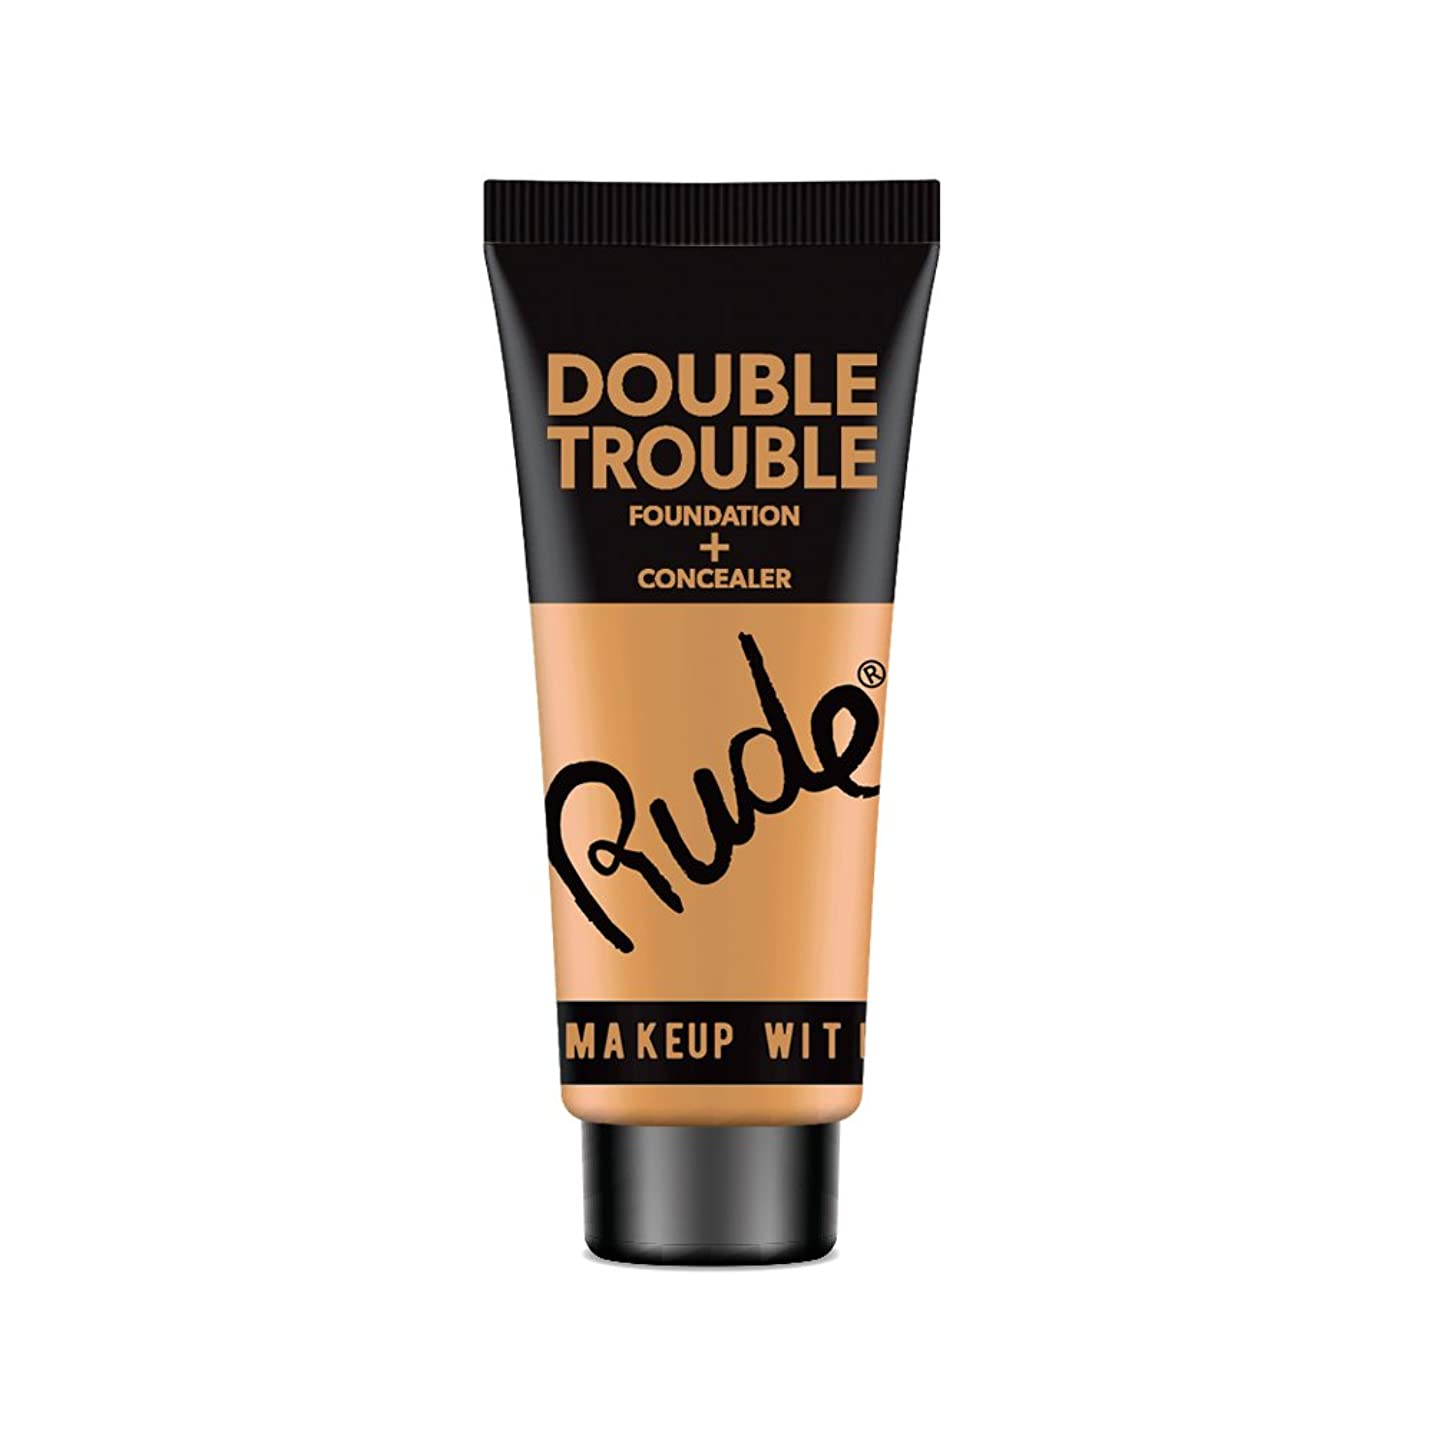 であること恐ろしいです砂(3 Pack) RUDE Double Trouble Foundation + Concealer - Warm Natural (並行輸入品)